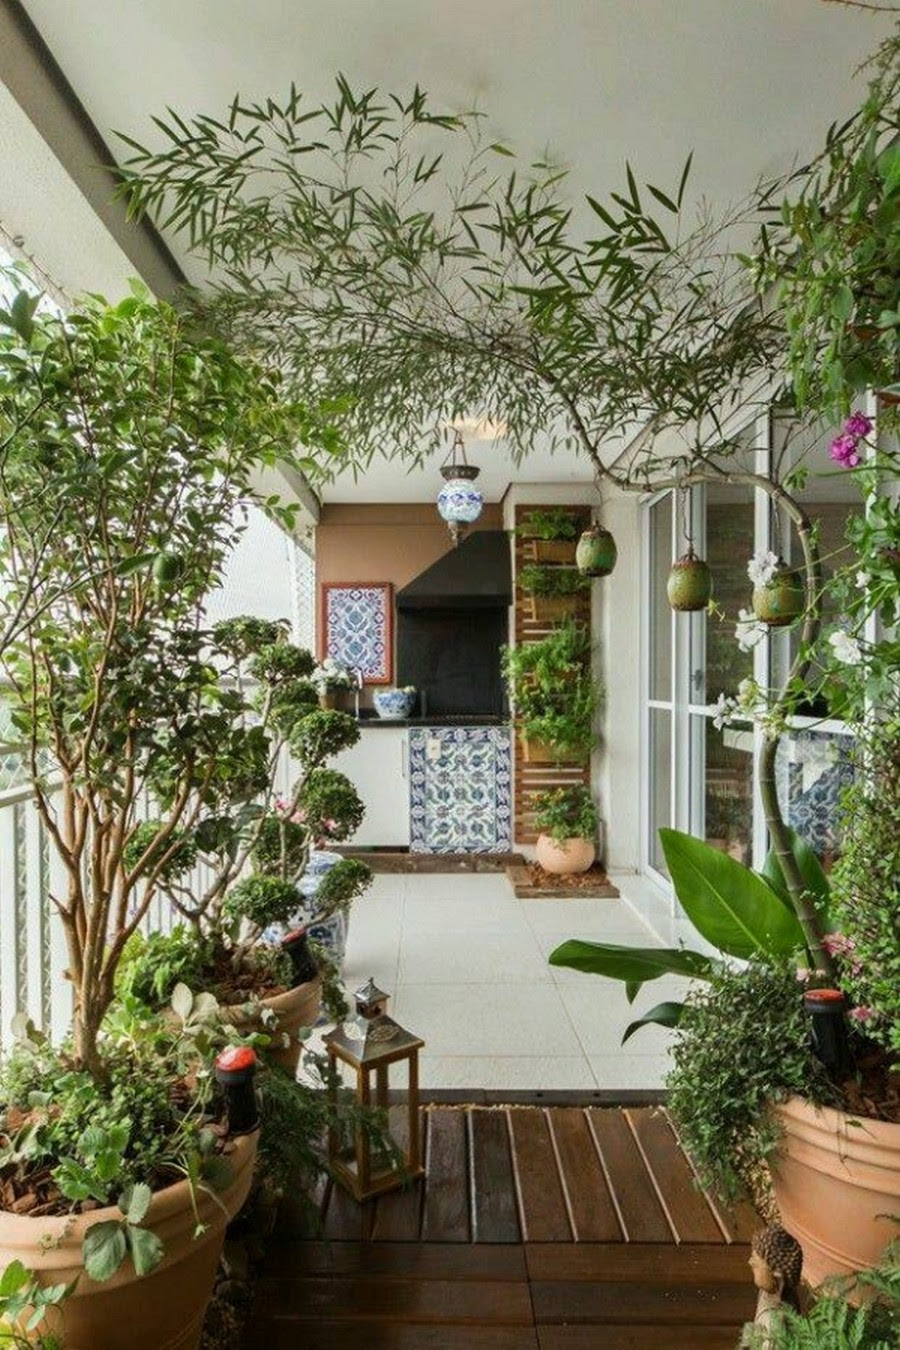 10 Clever Ways To Decorate Your Balcony Area | Recycled Crafts